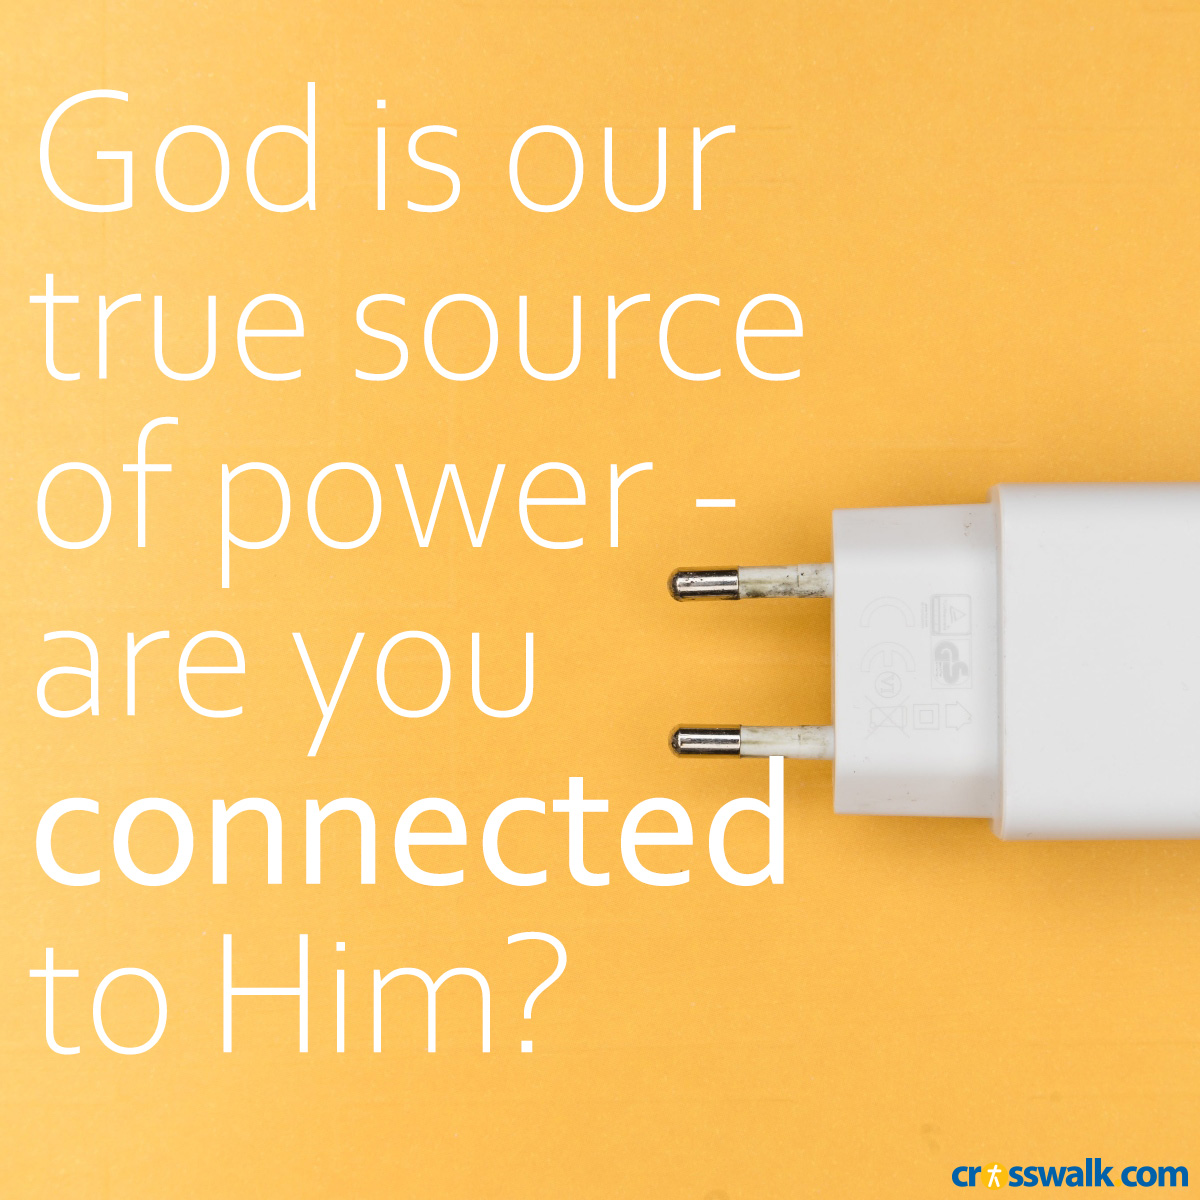 God is our true source of power